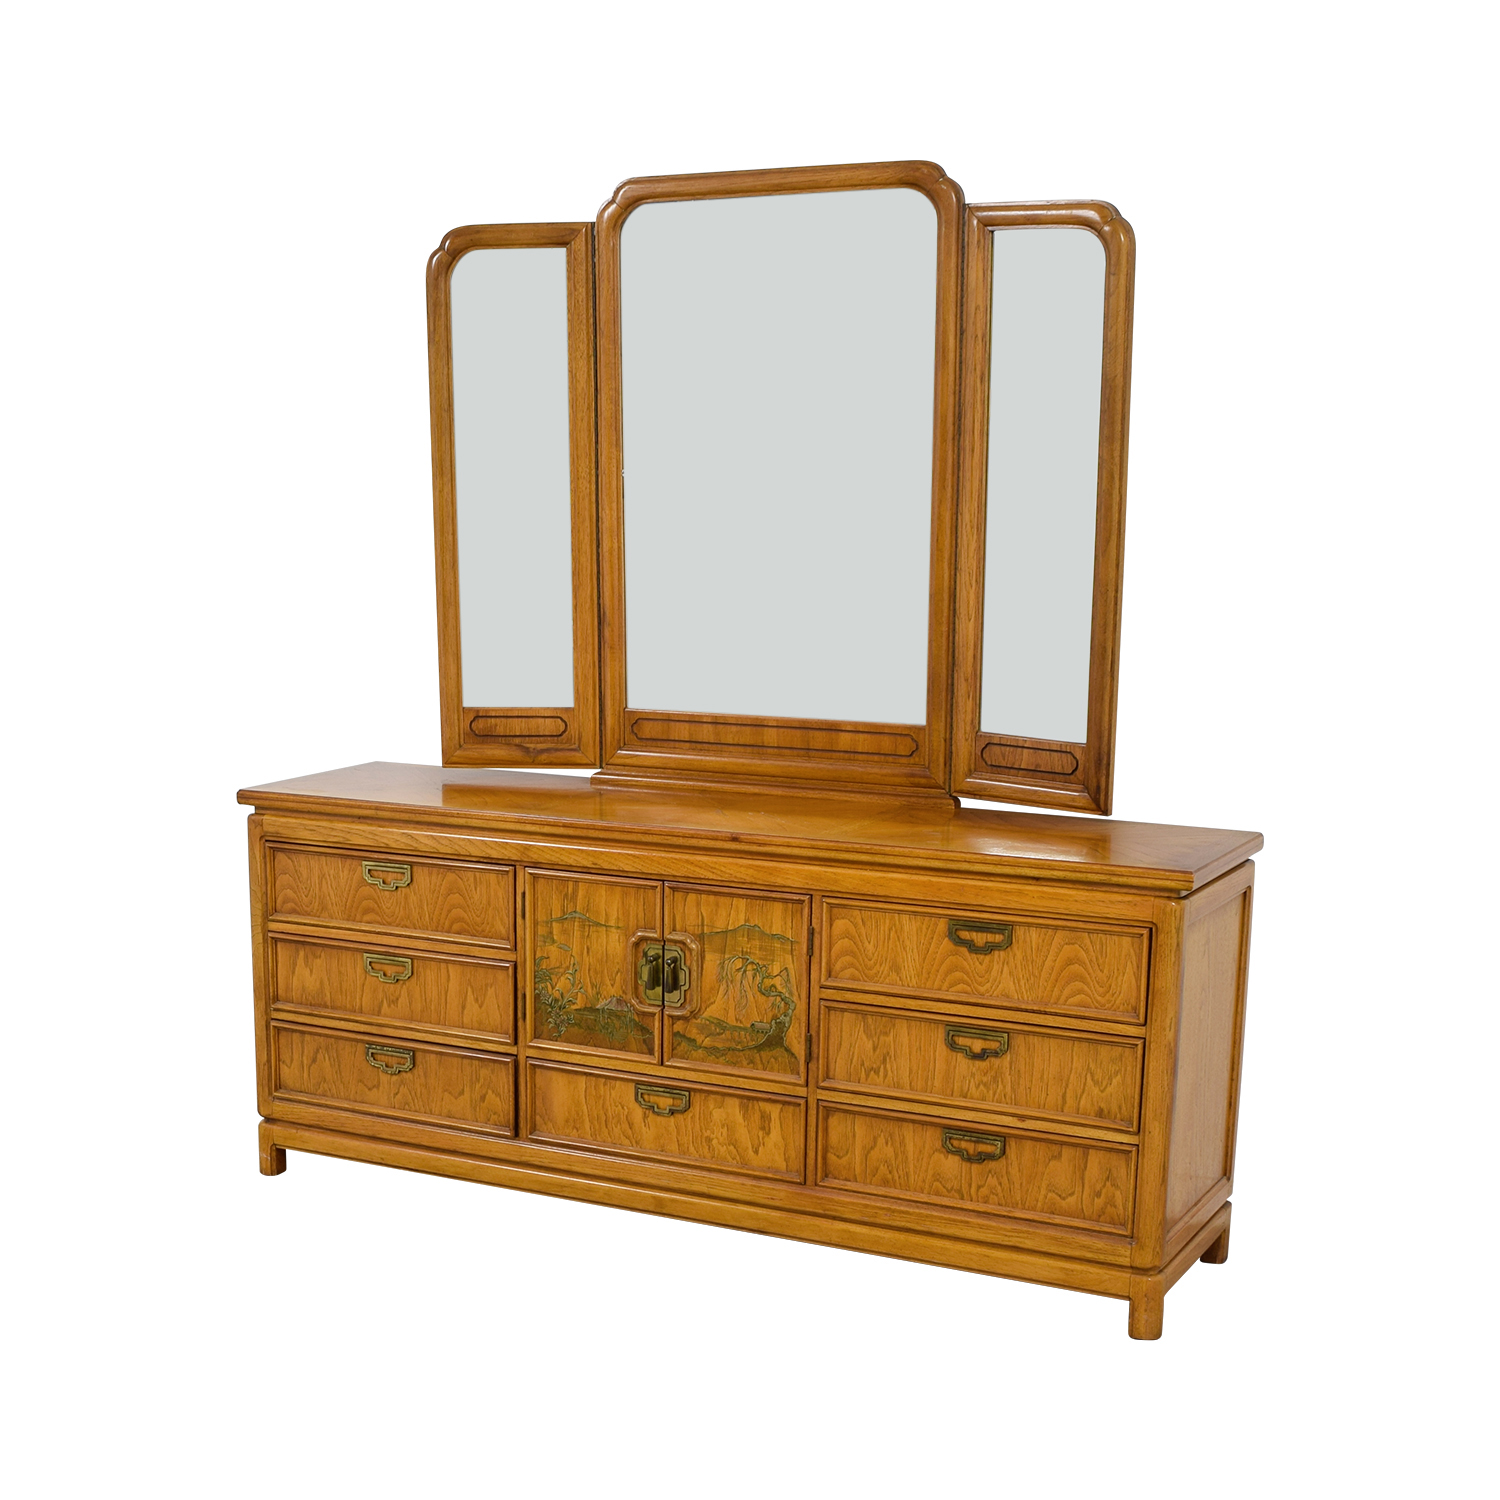 Thomasville Thomasville Nine-Drawer Dresser with Folding MIrror